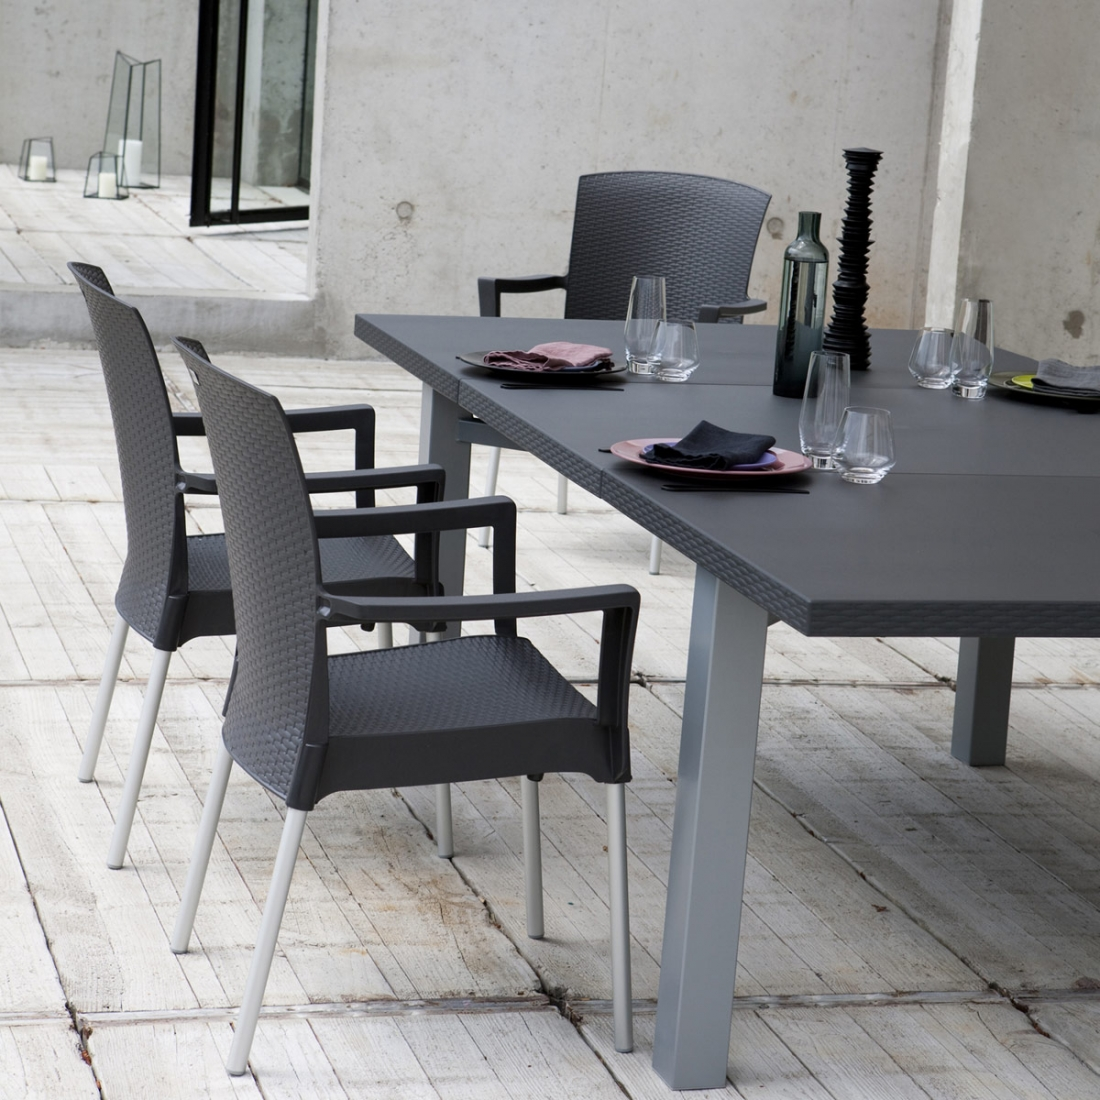 Salon de jardin de repas ineo design grosfillex for Kreabel salon de jardin